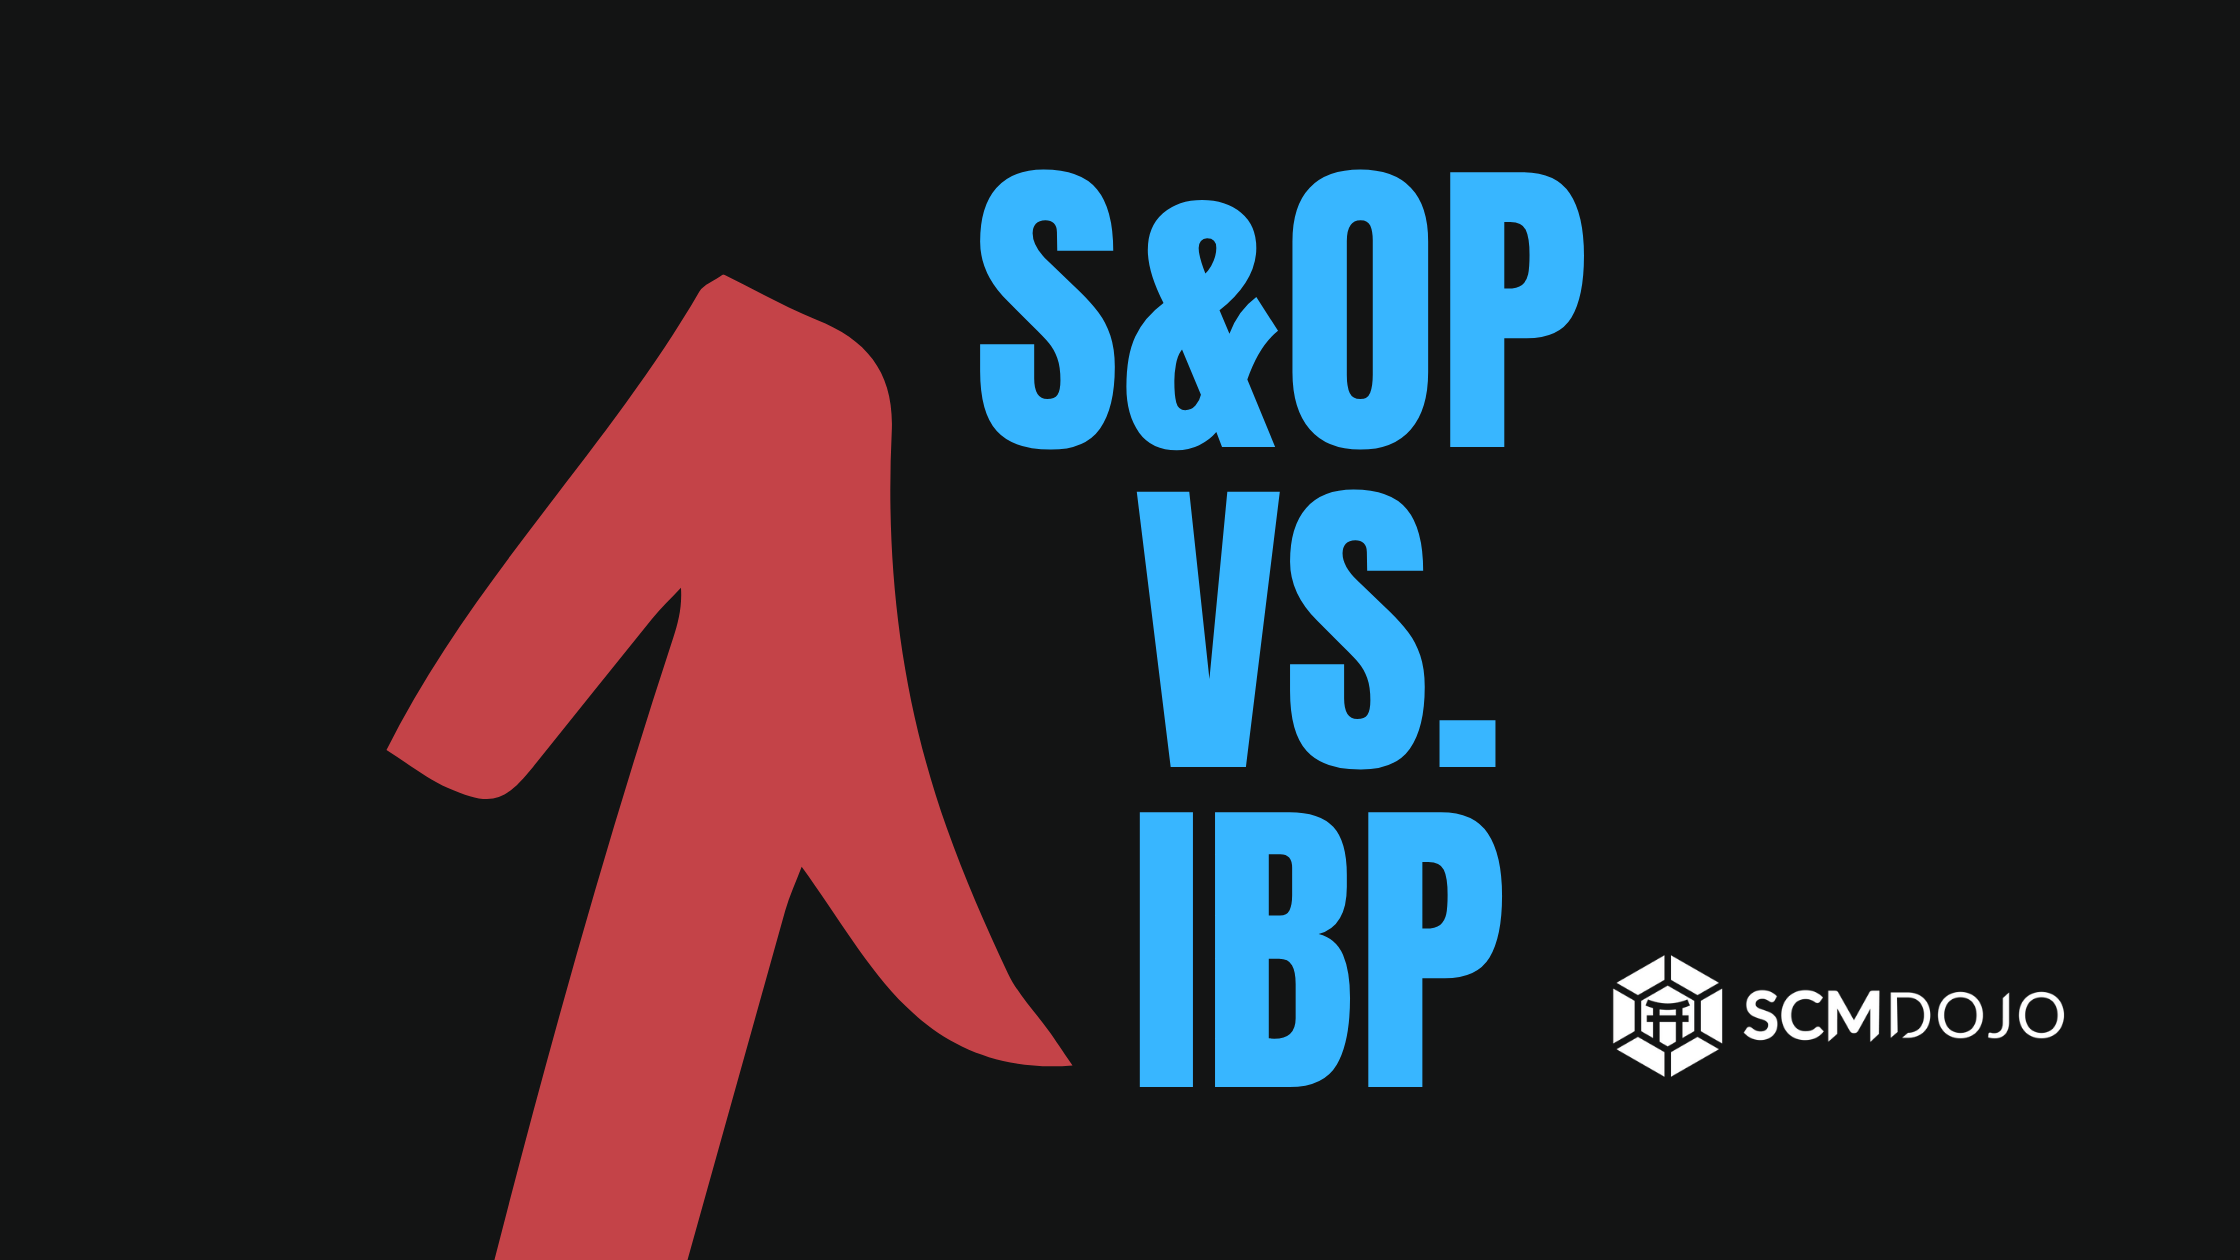 S&OP Vs IBP – What is the Difference?